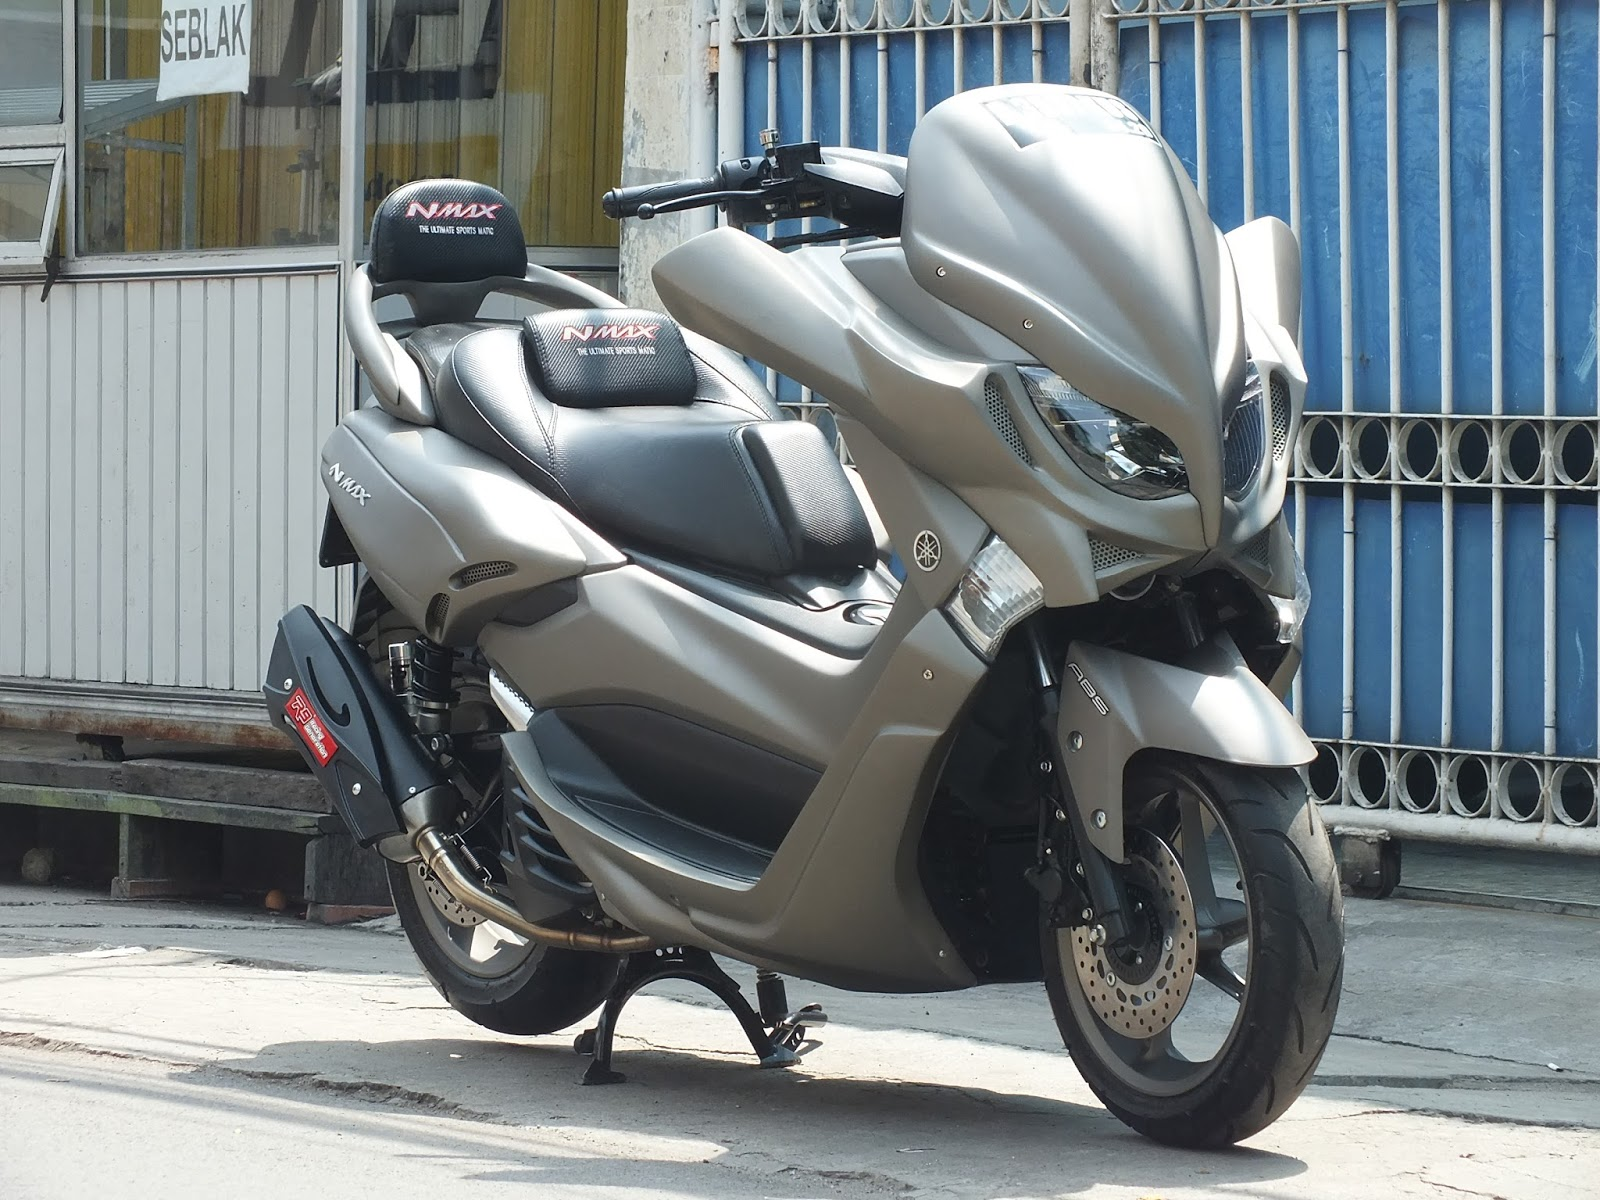 Doctor Matic Klinik Spesialis Motor Matic Yamaha NMAX Modifikasi FULL